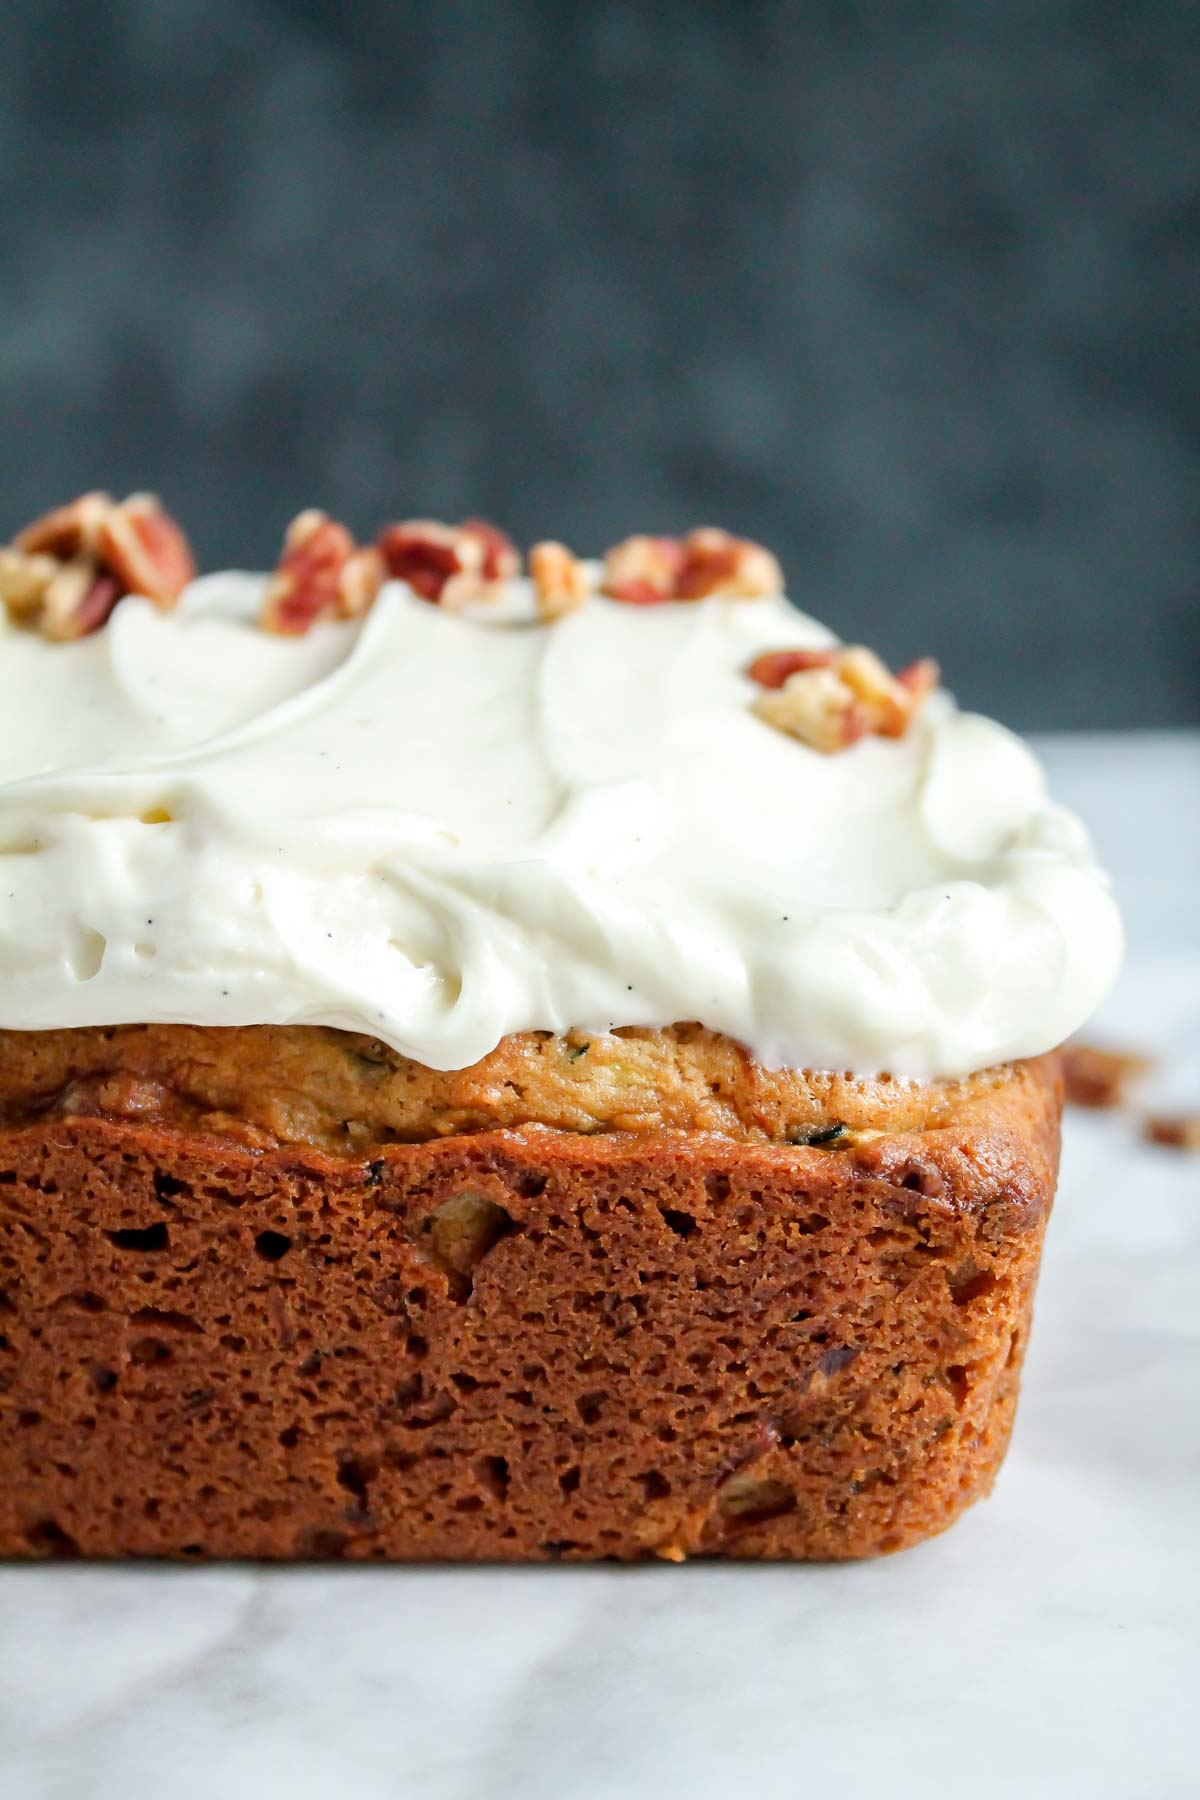 Healthy Zucchini Cake With Cream Cheese Frosting